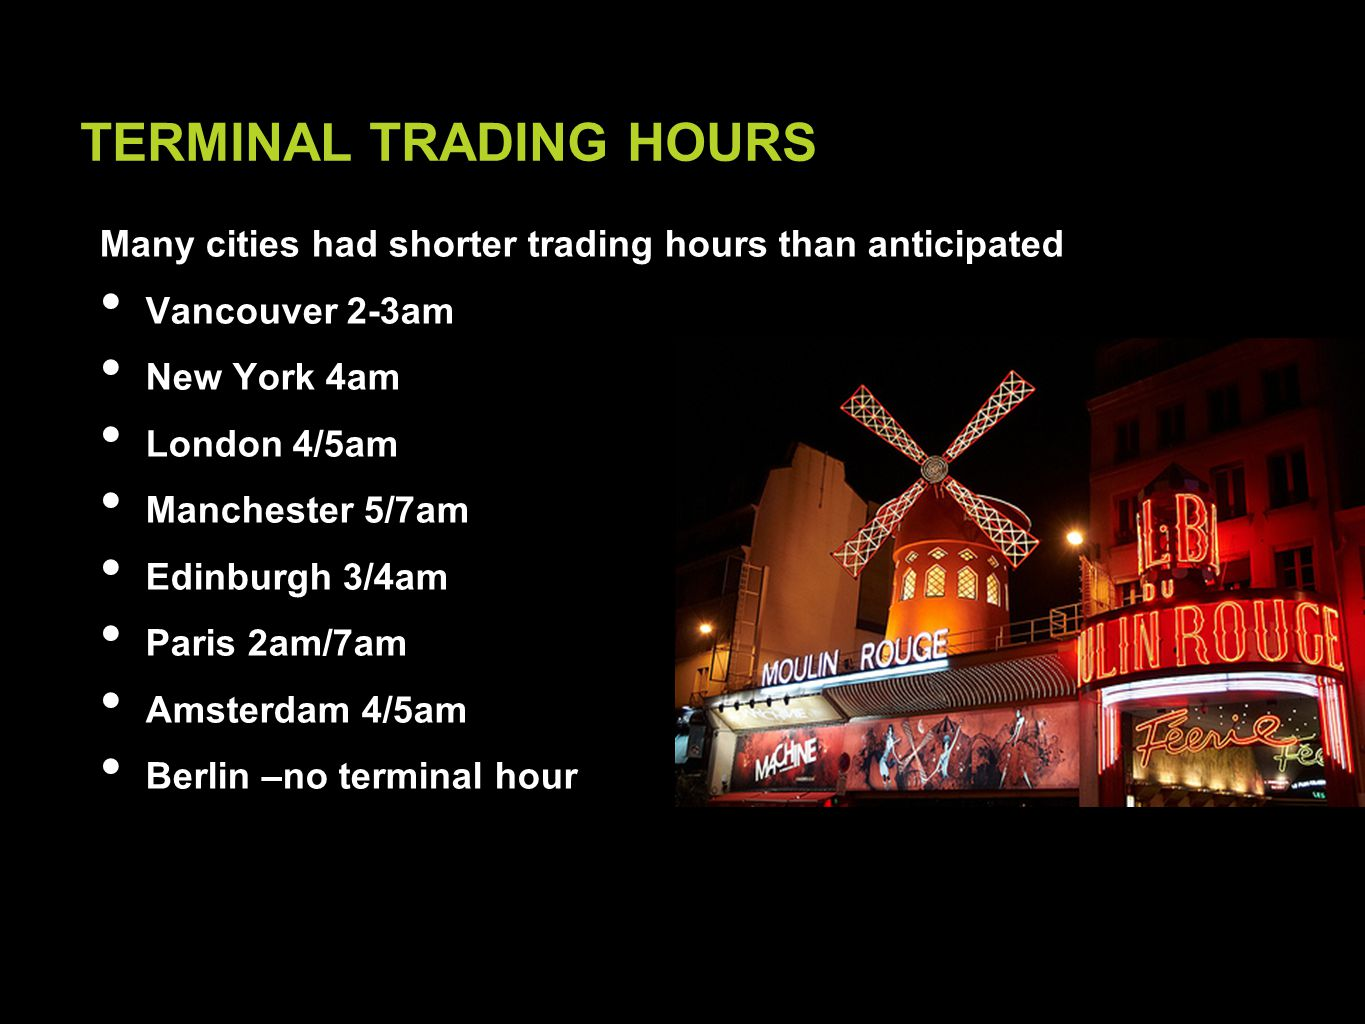 Many cities had shorter trading hours than anticipated Vancouver 2-3am New York 4am London 4/5am Manchester 5/7am Edinburgh 3/4am Paris 2am/7am Amsterdam 4/5am Berlin –no terminal hour TERMINAL TRADING HOURS